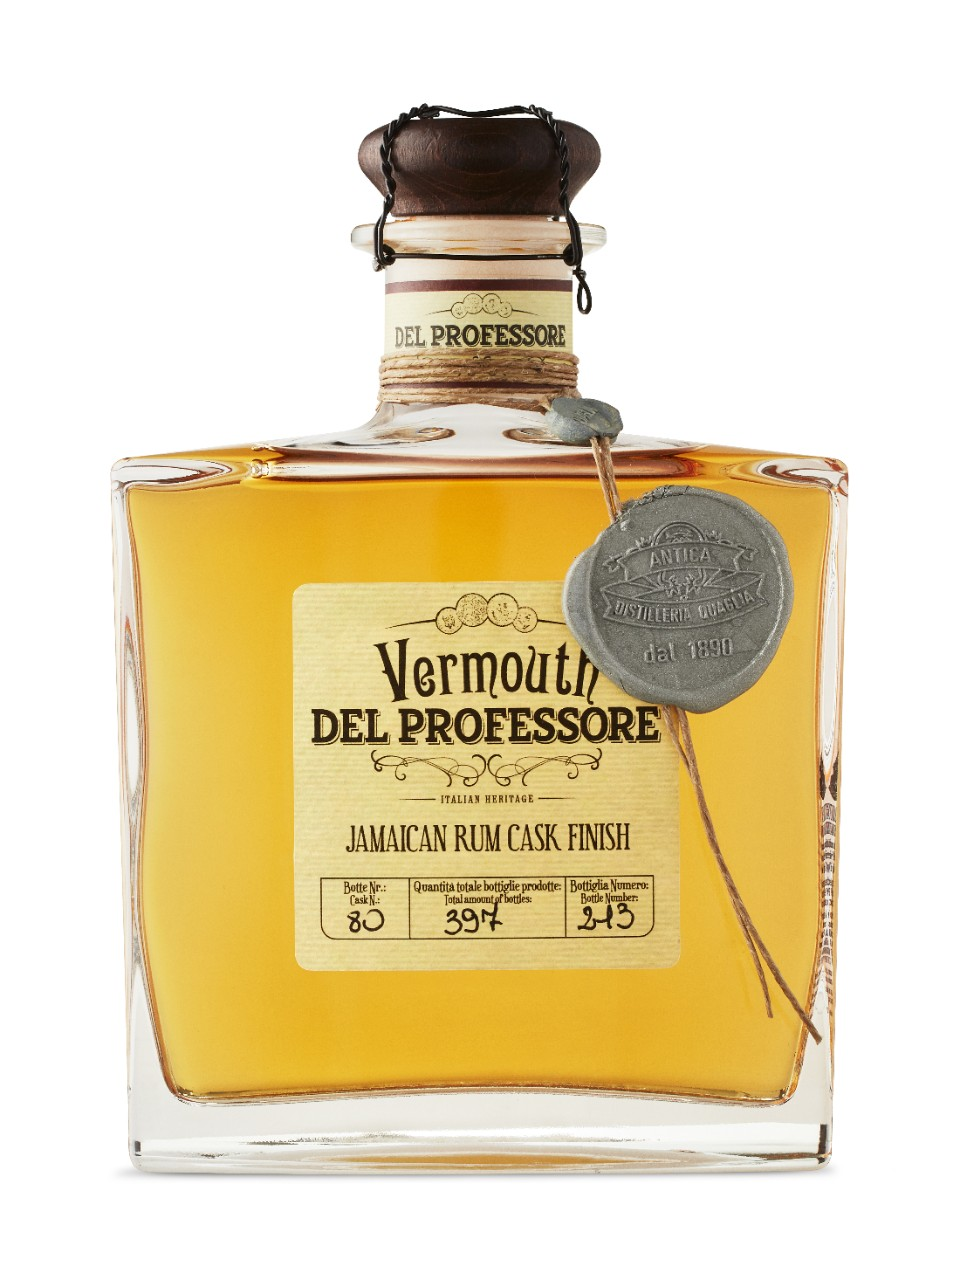 Del Professore Vermouth in Botte Da Rum Jamaicano